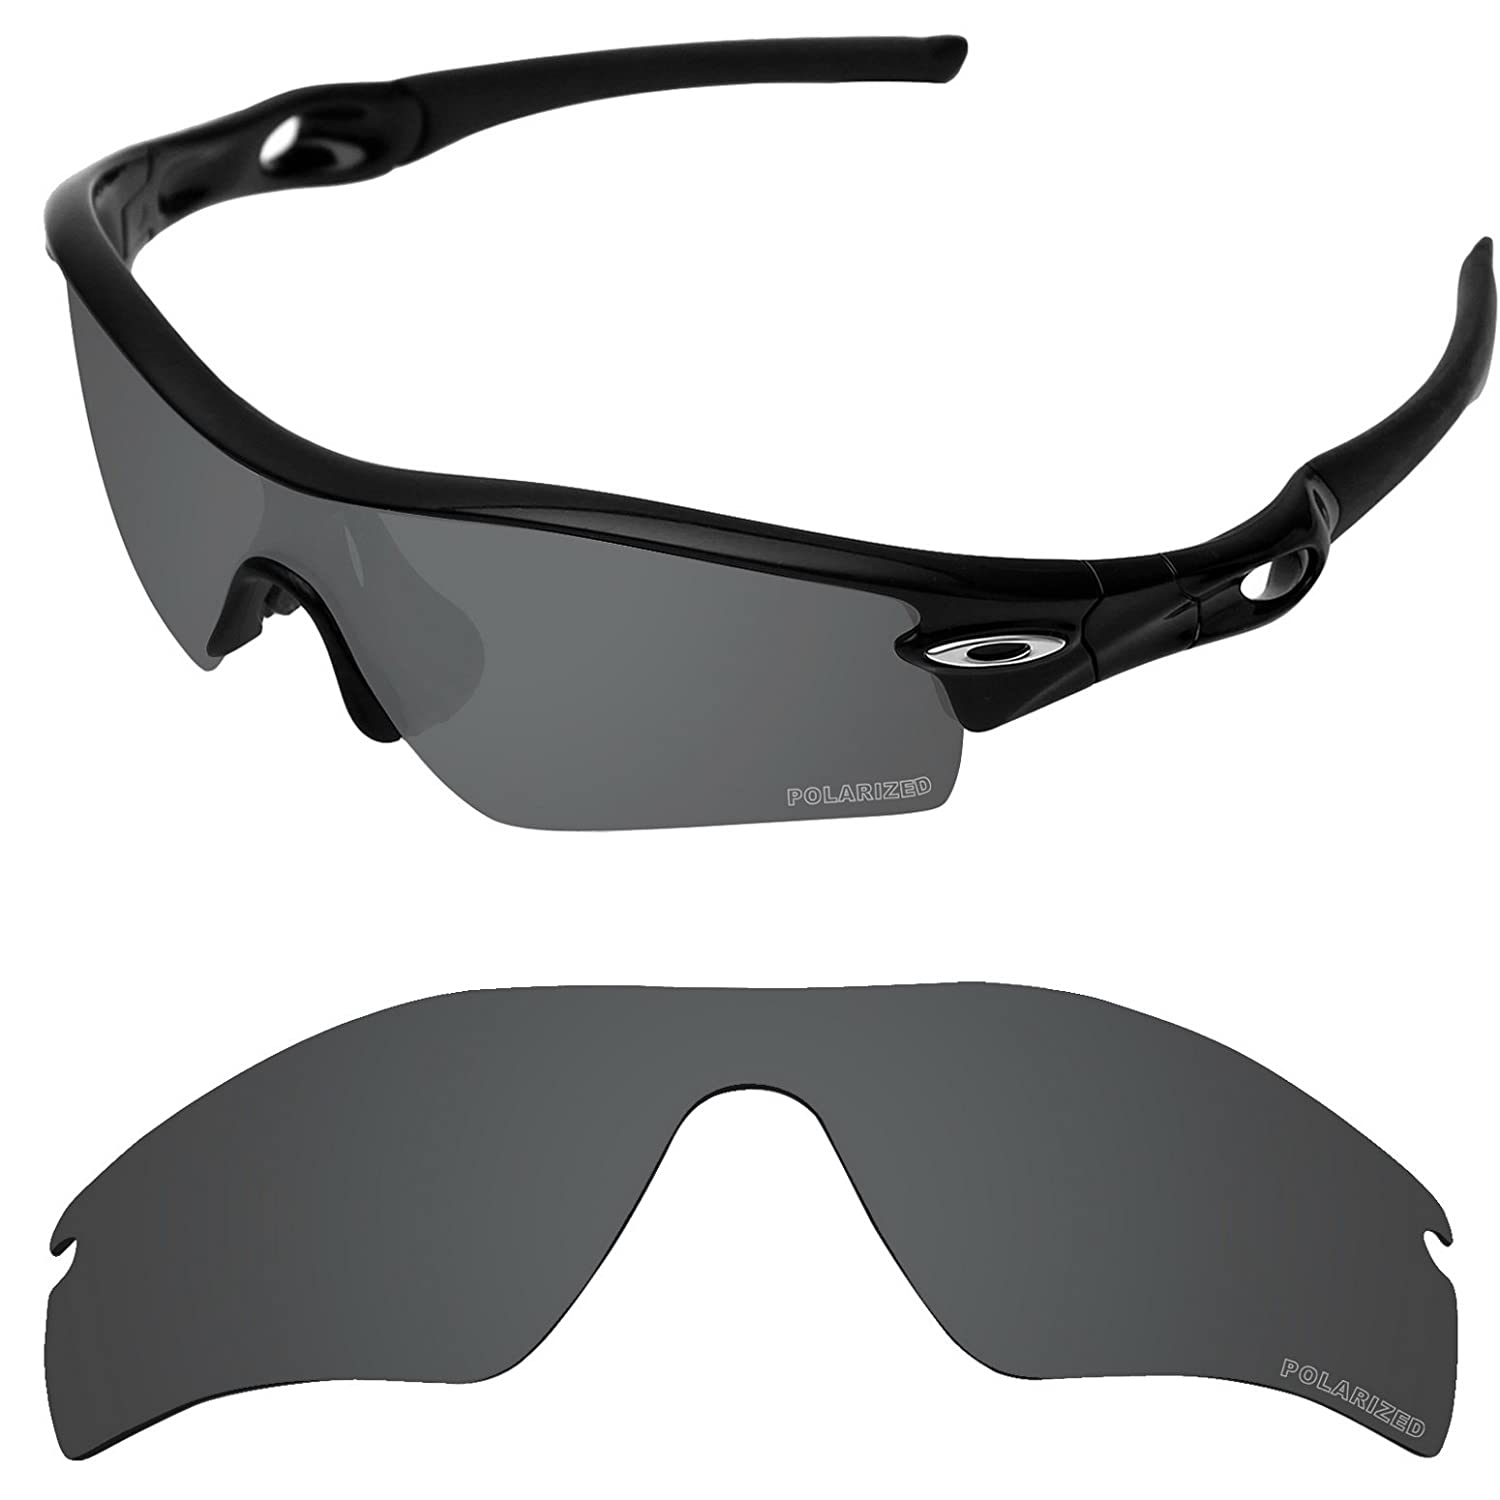 55ac2d3f34 Amazon.com  Tintart Performance Lenses Compatible with Oakley Radar Path  Polarized Etched-Carbon Black  Clothing